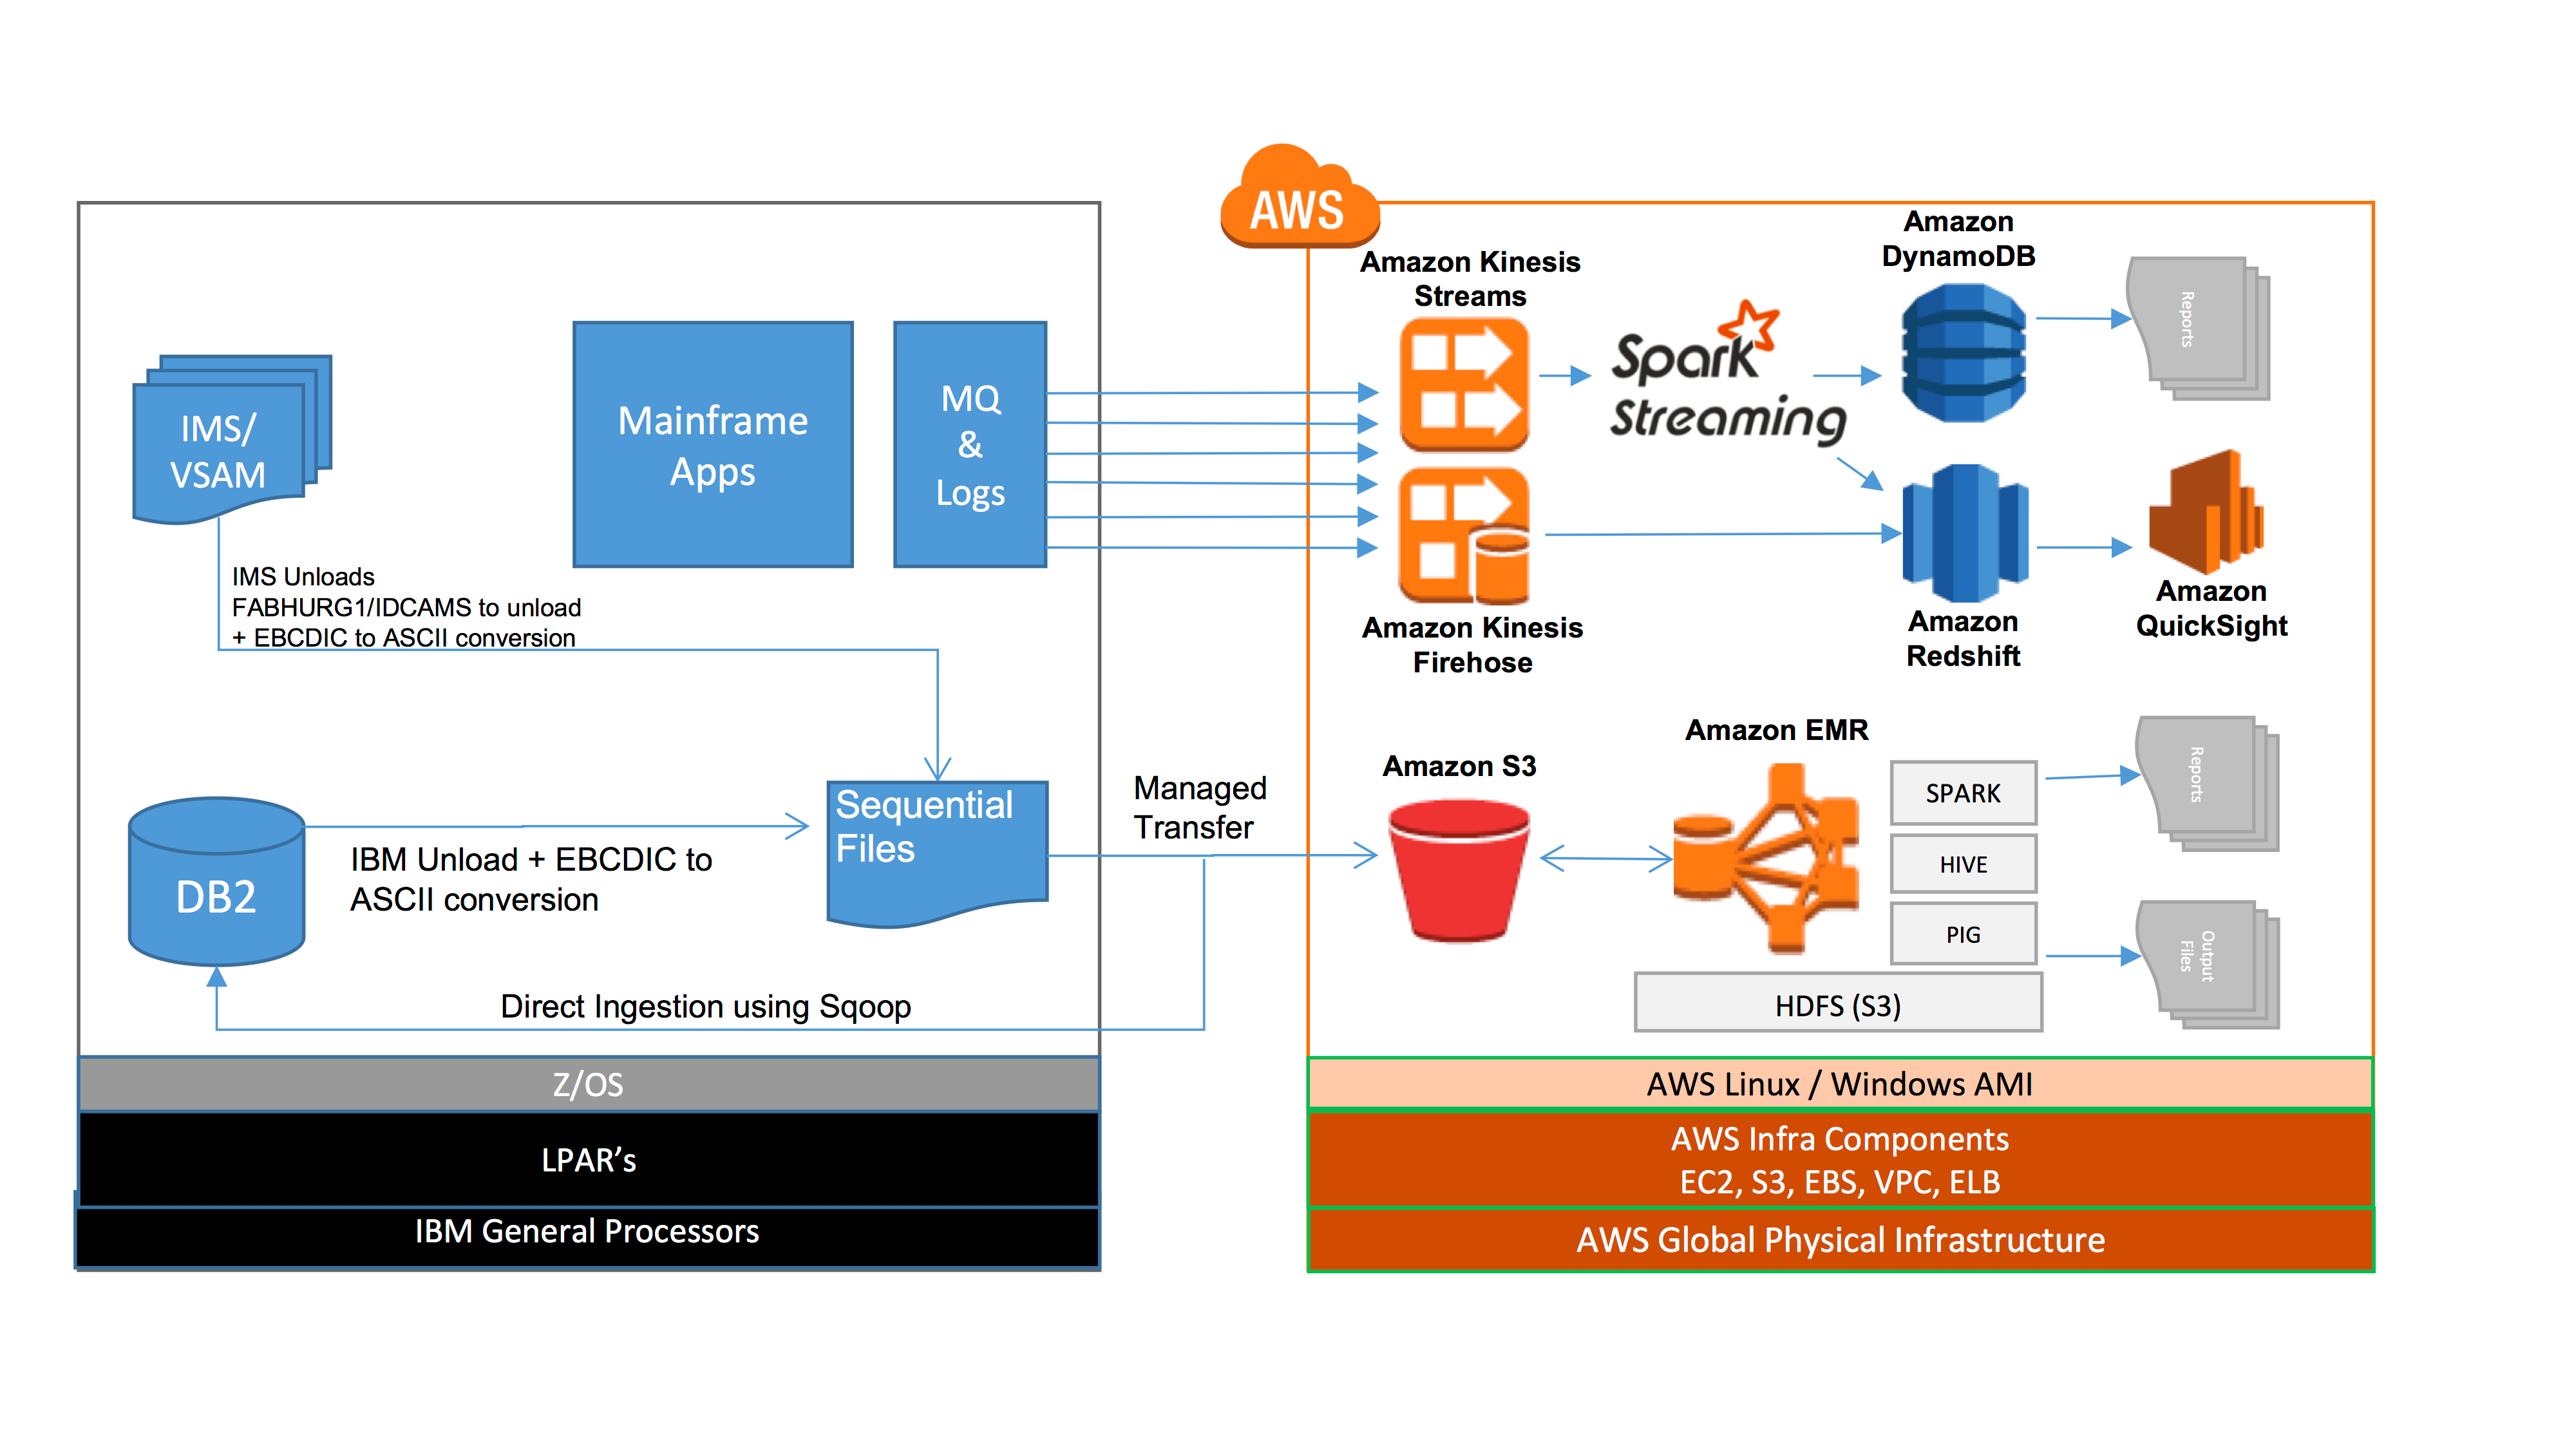 Yes, You Can Migrate Your Mainframe to the Cloud - AWS